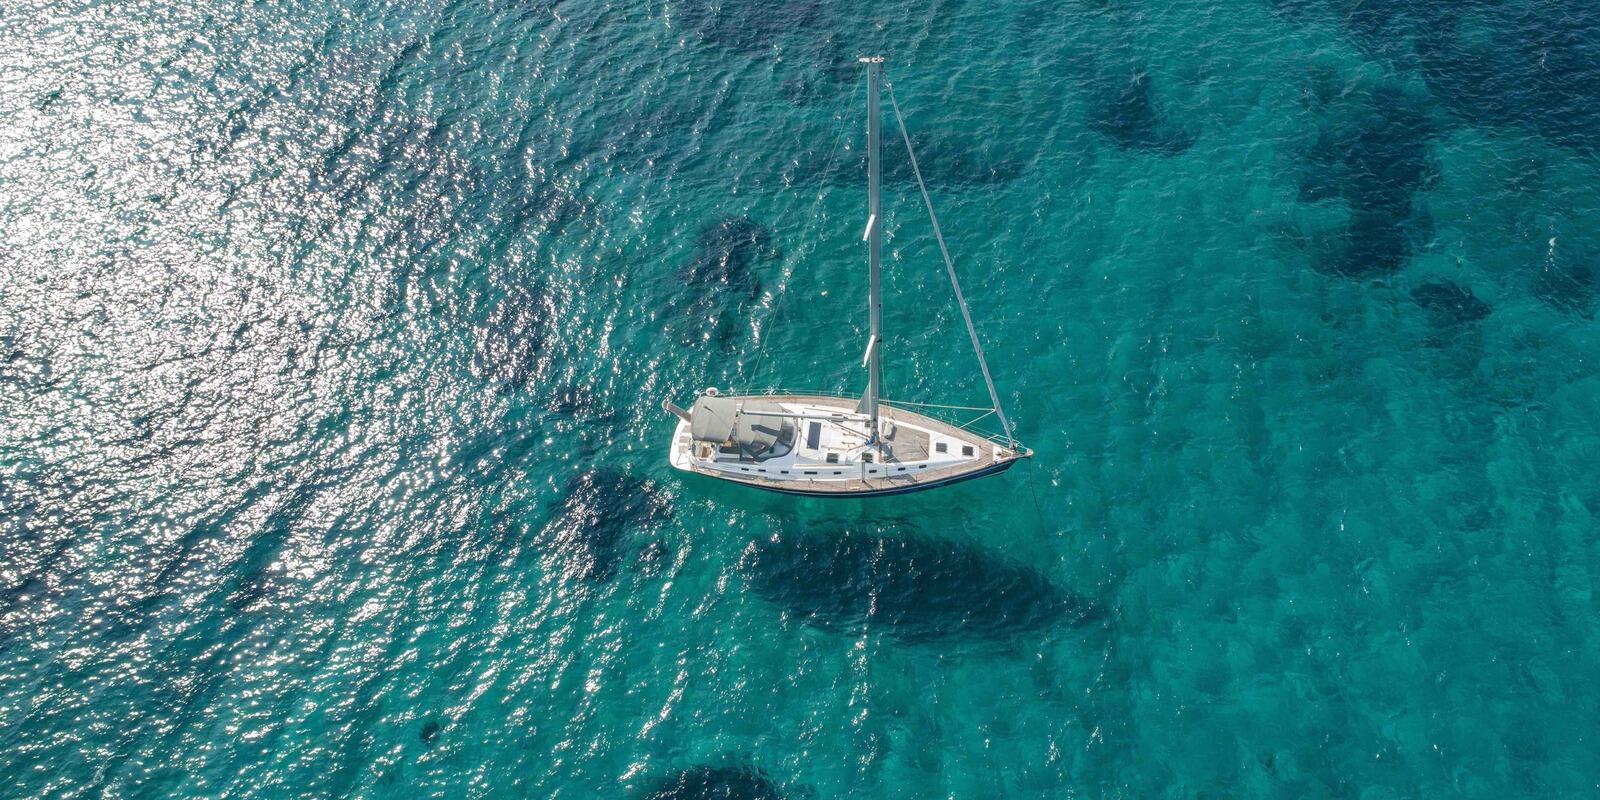 SHARE & SAIL: enjoy the islands with new friends